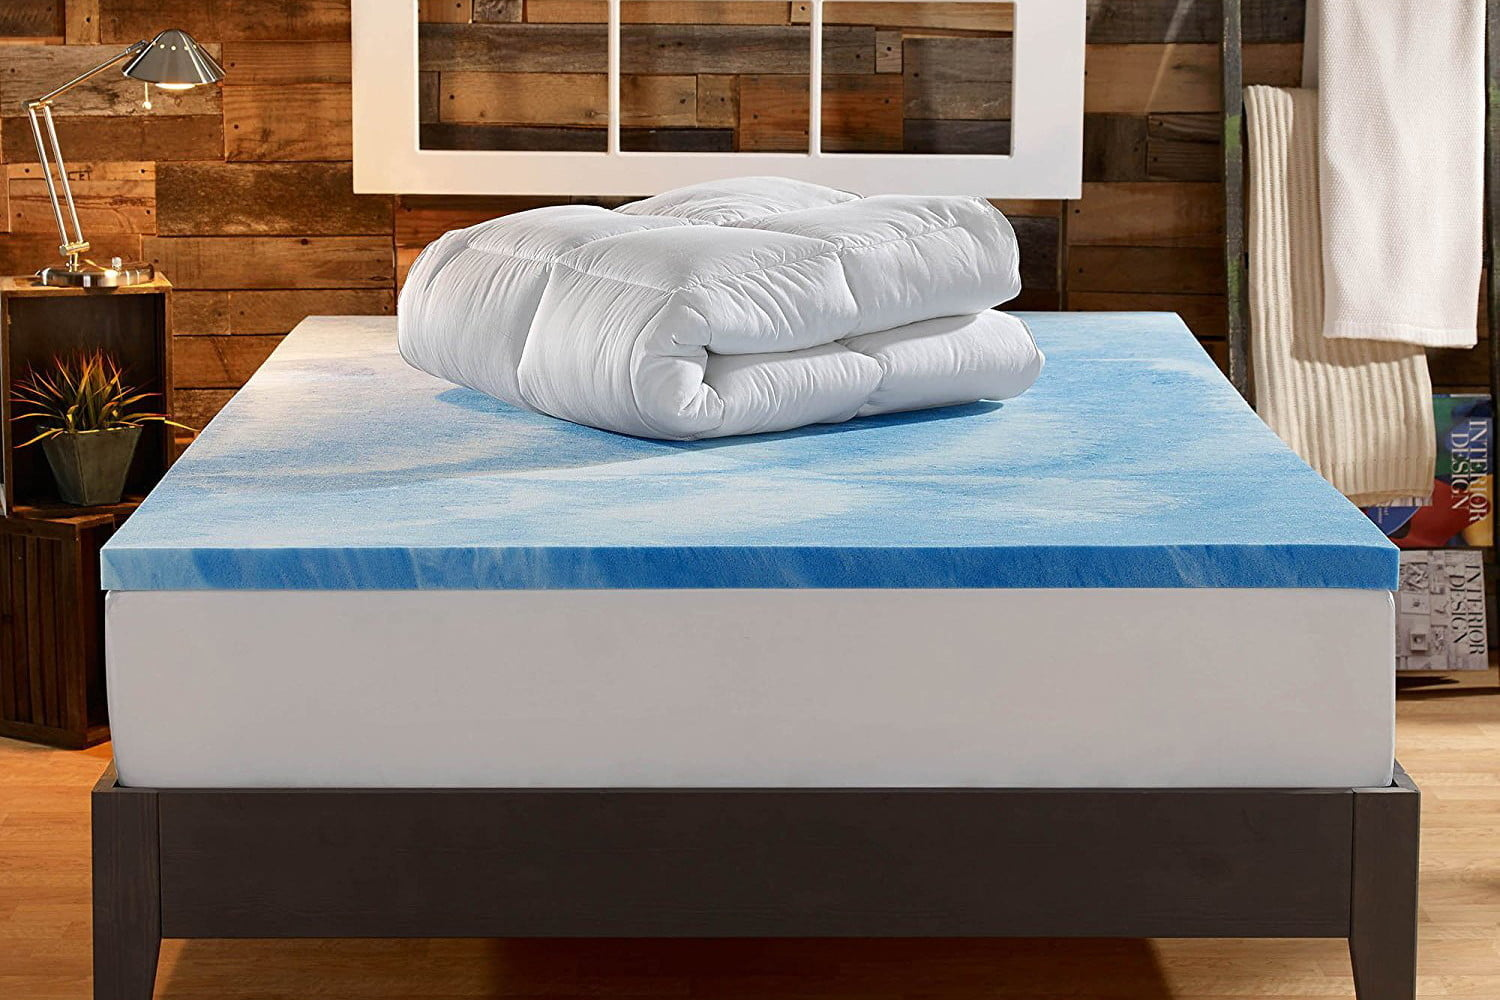 Best Mattress Amazon The Best Memory Foam Mattress Toppers For A Better Night S Sleep